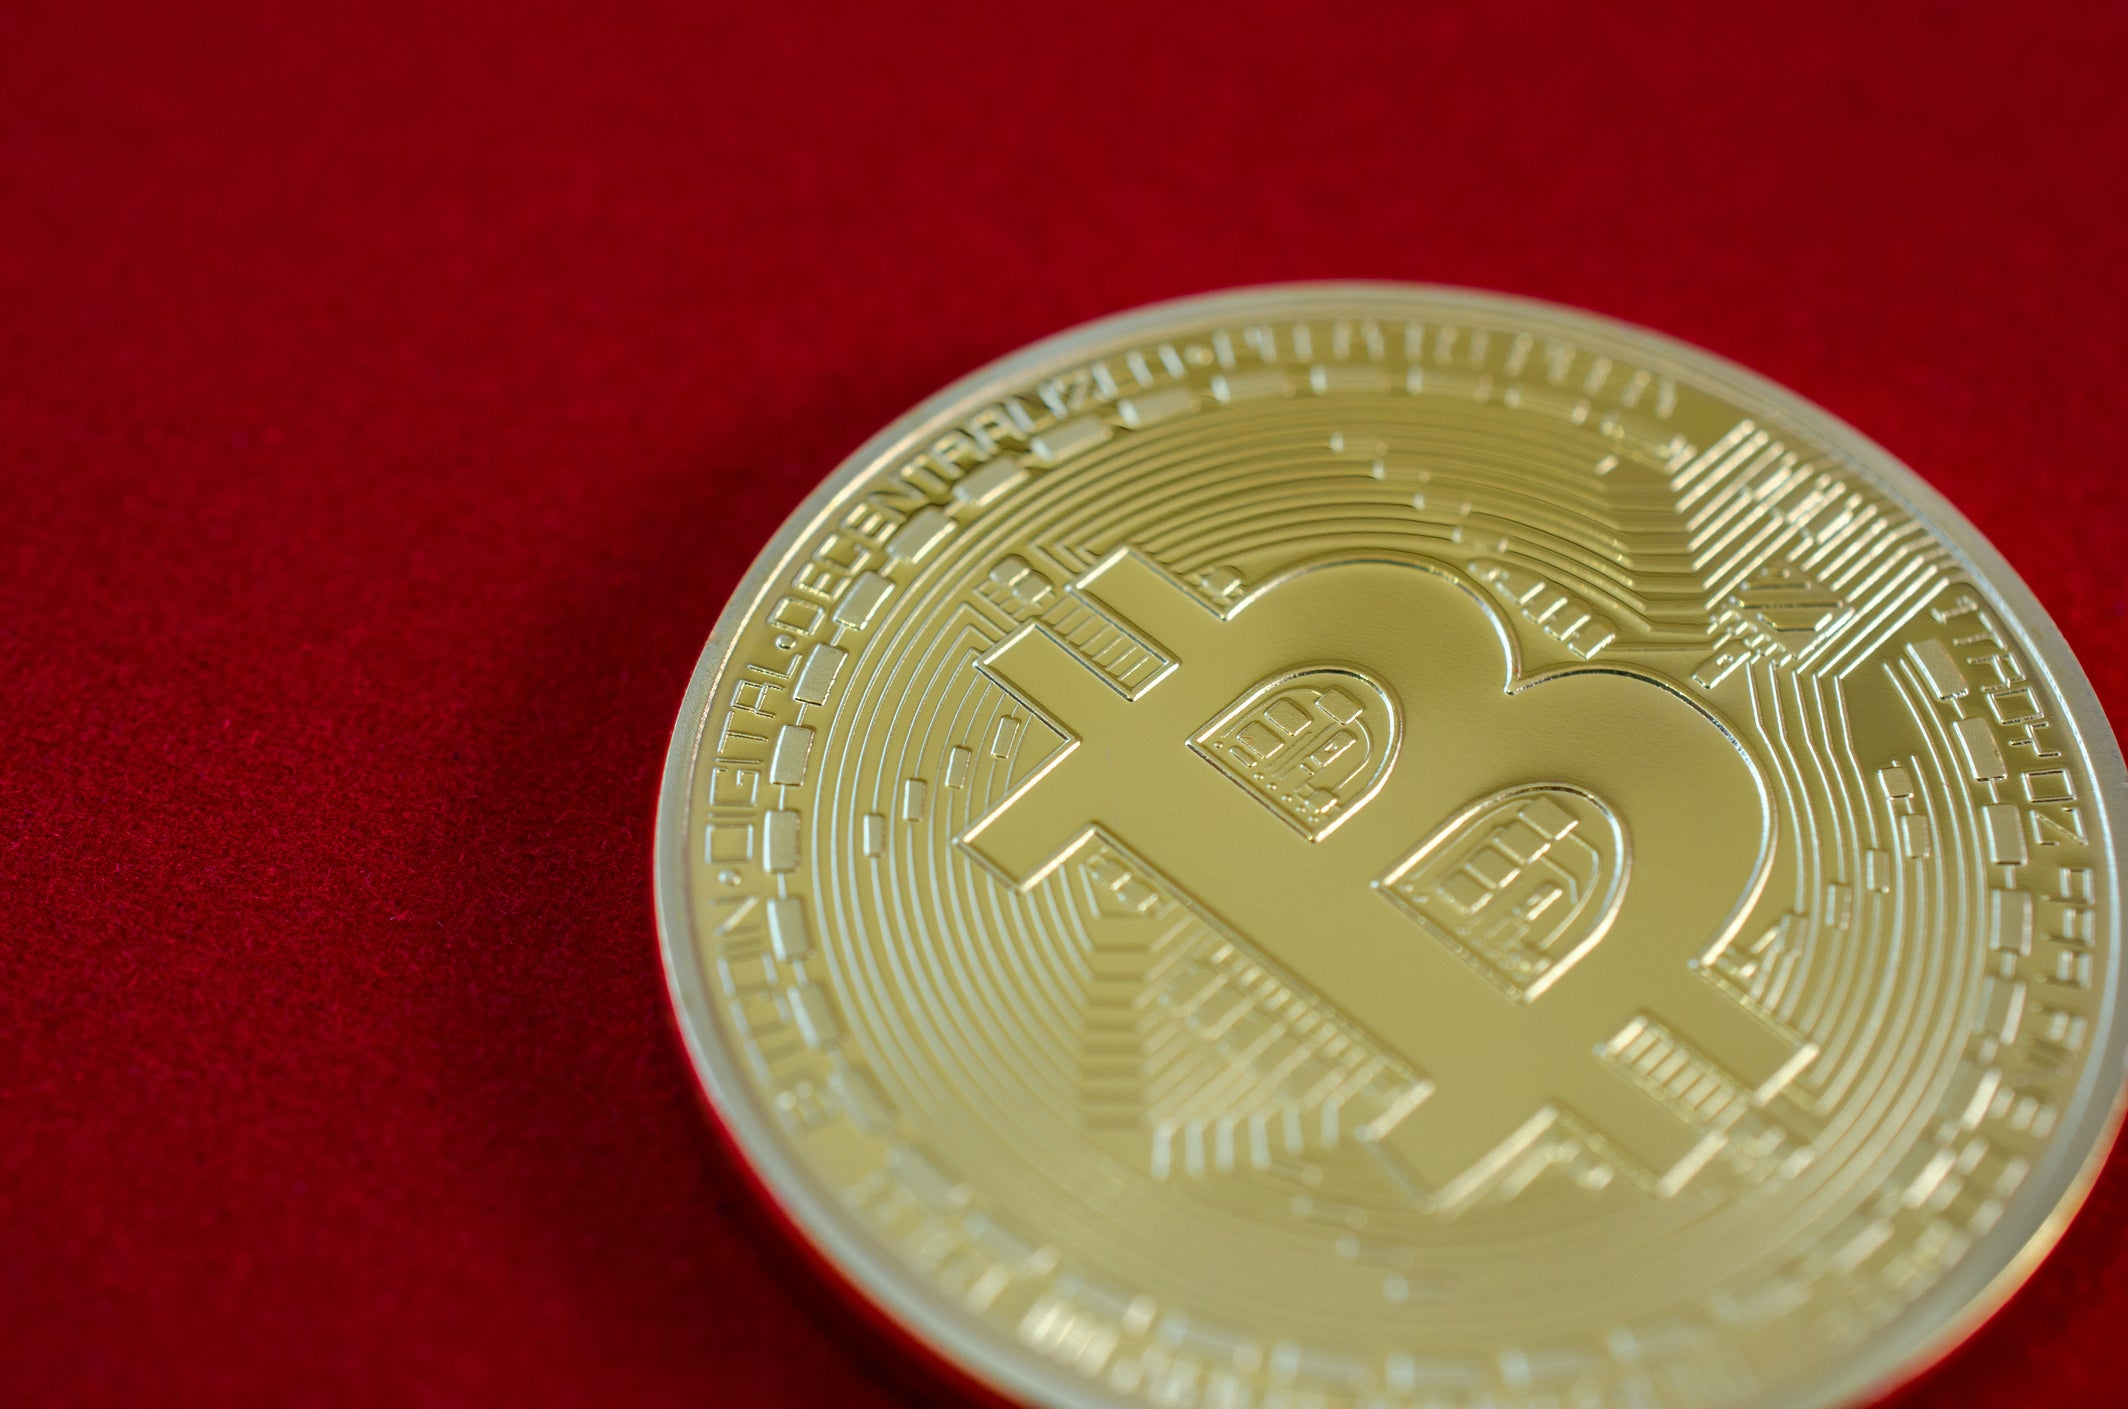 This Is the Average Price Bitcoin Investors Would Sell, and